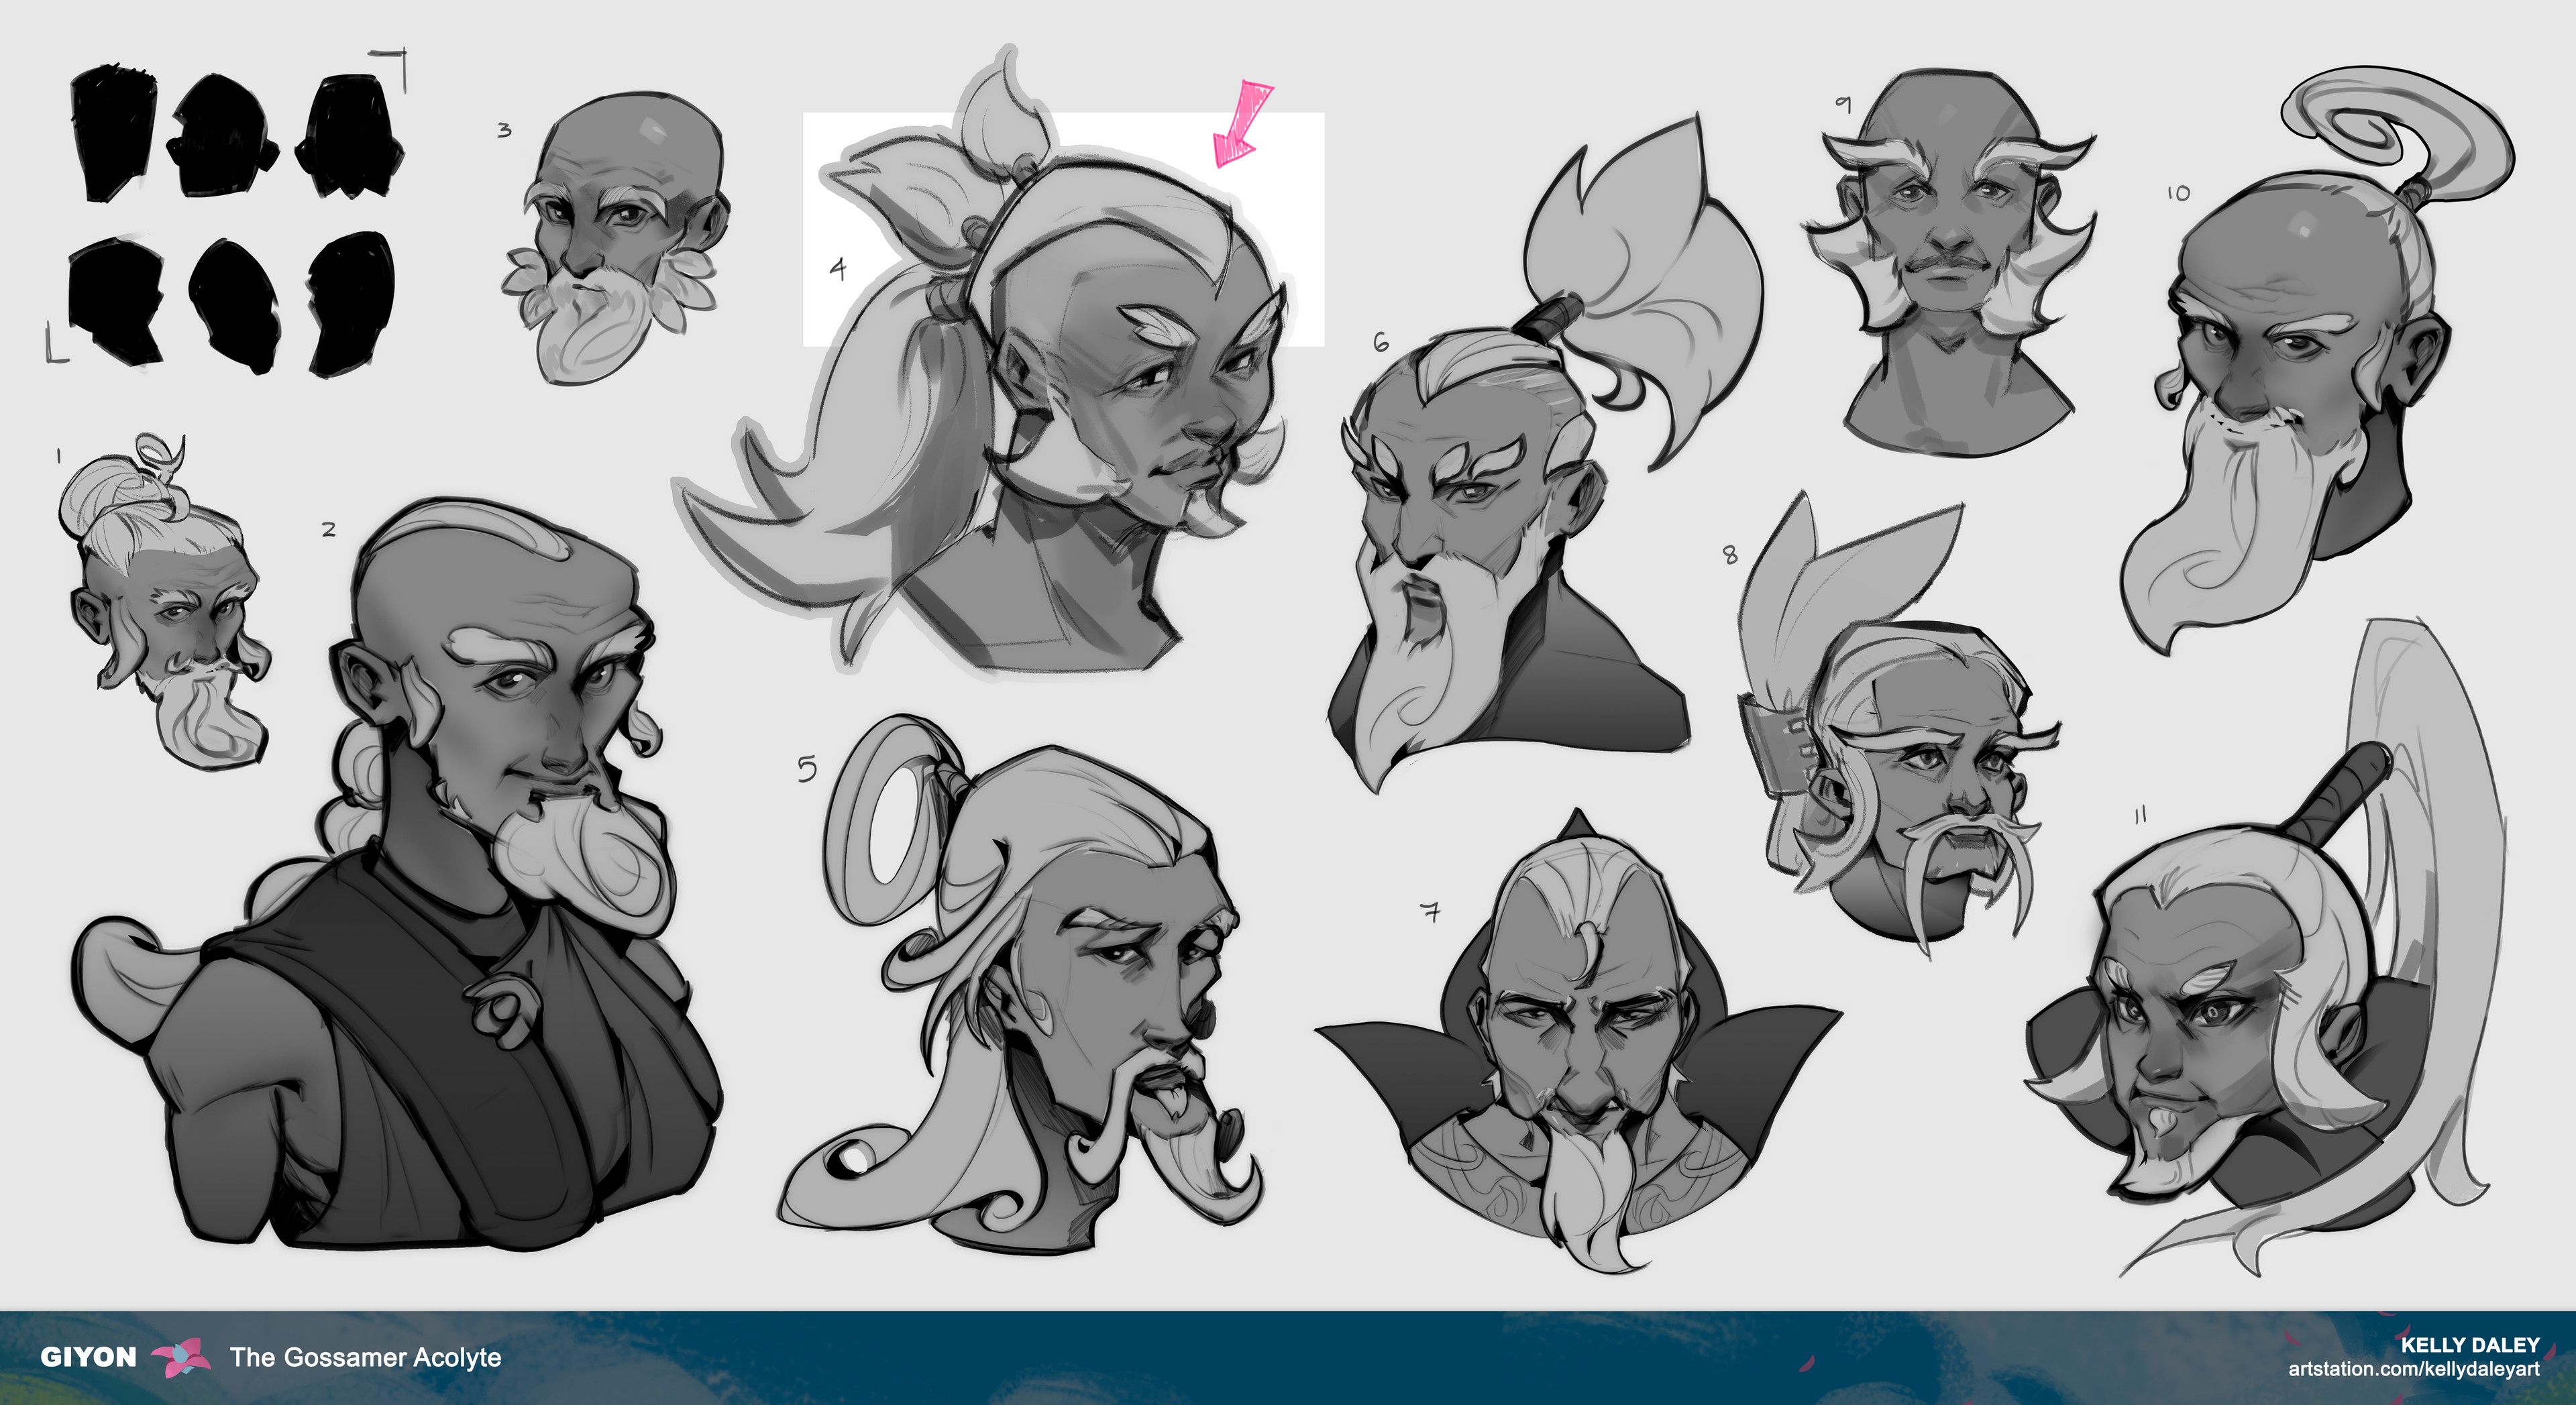 Early headshot explorations. With my newfound motifs for Giyon I ideated and decided that it would be best for me to find his face identity first.